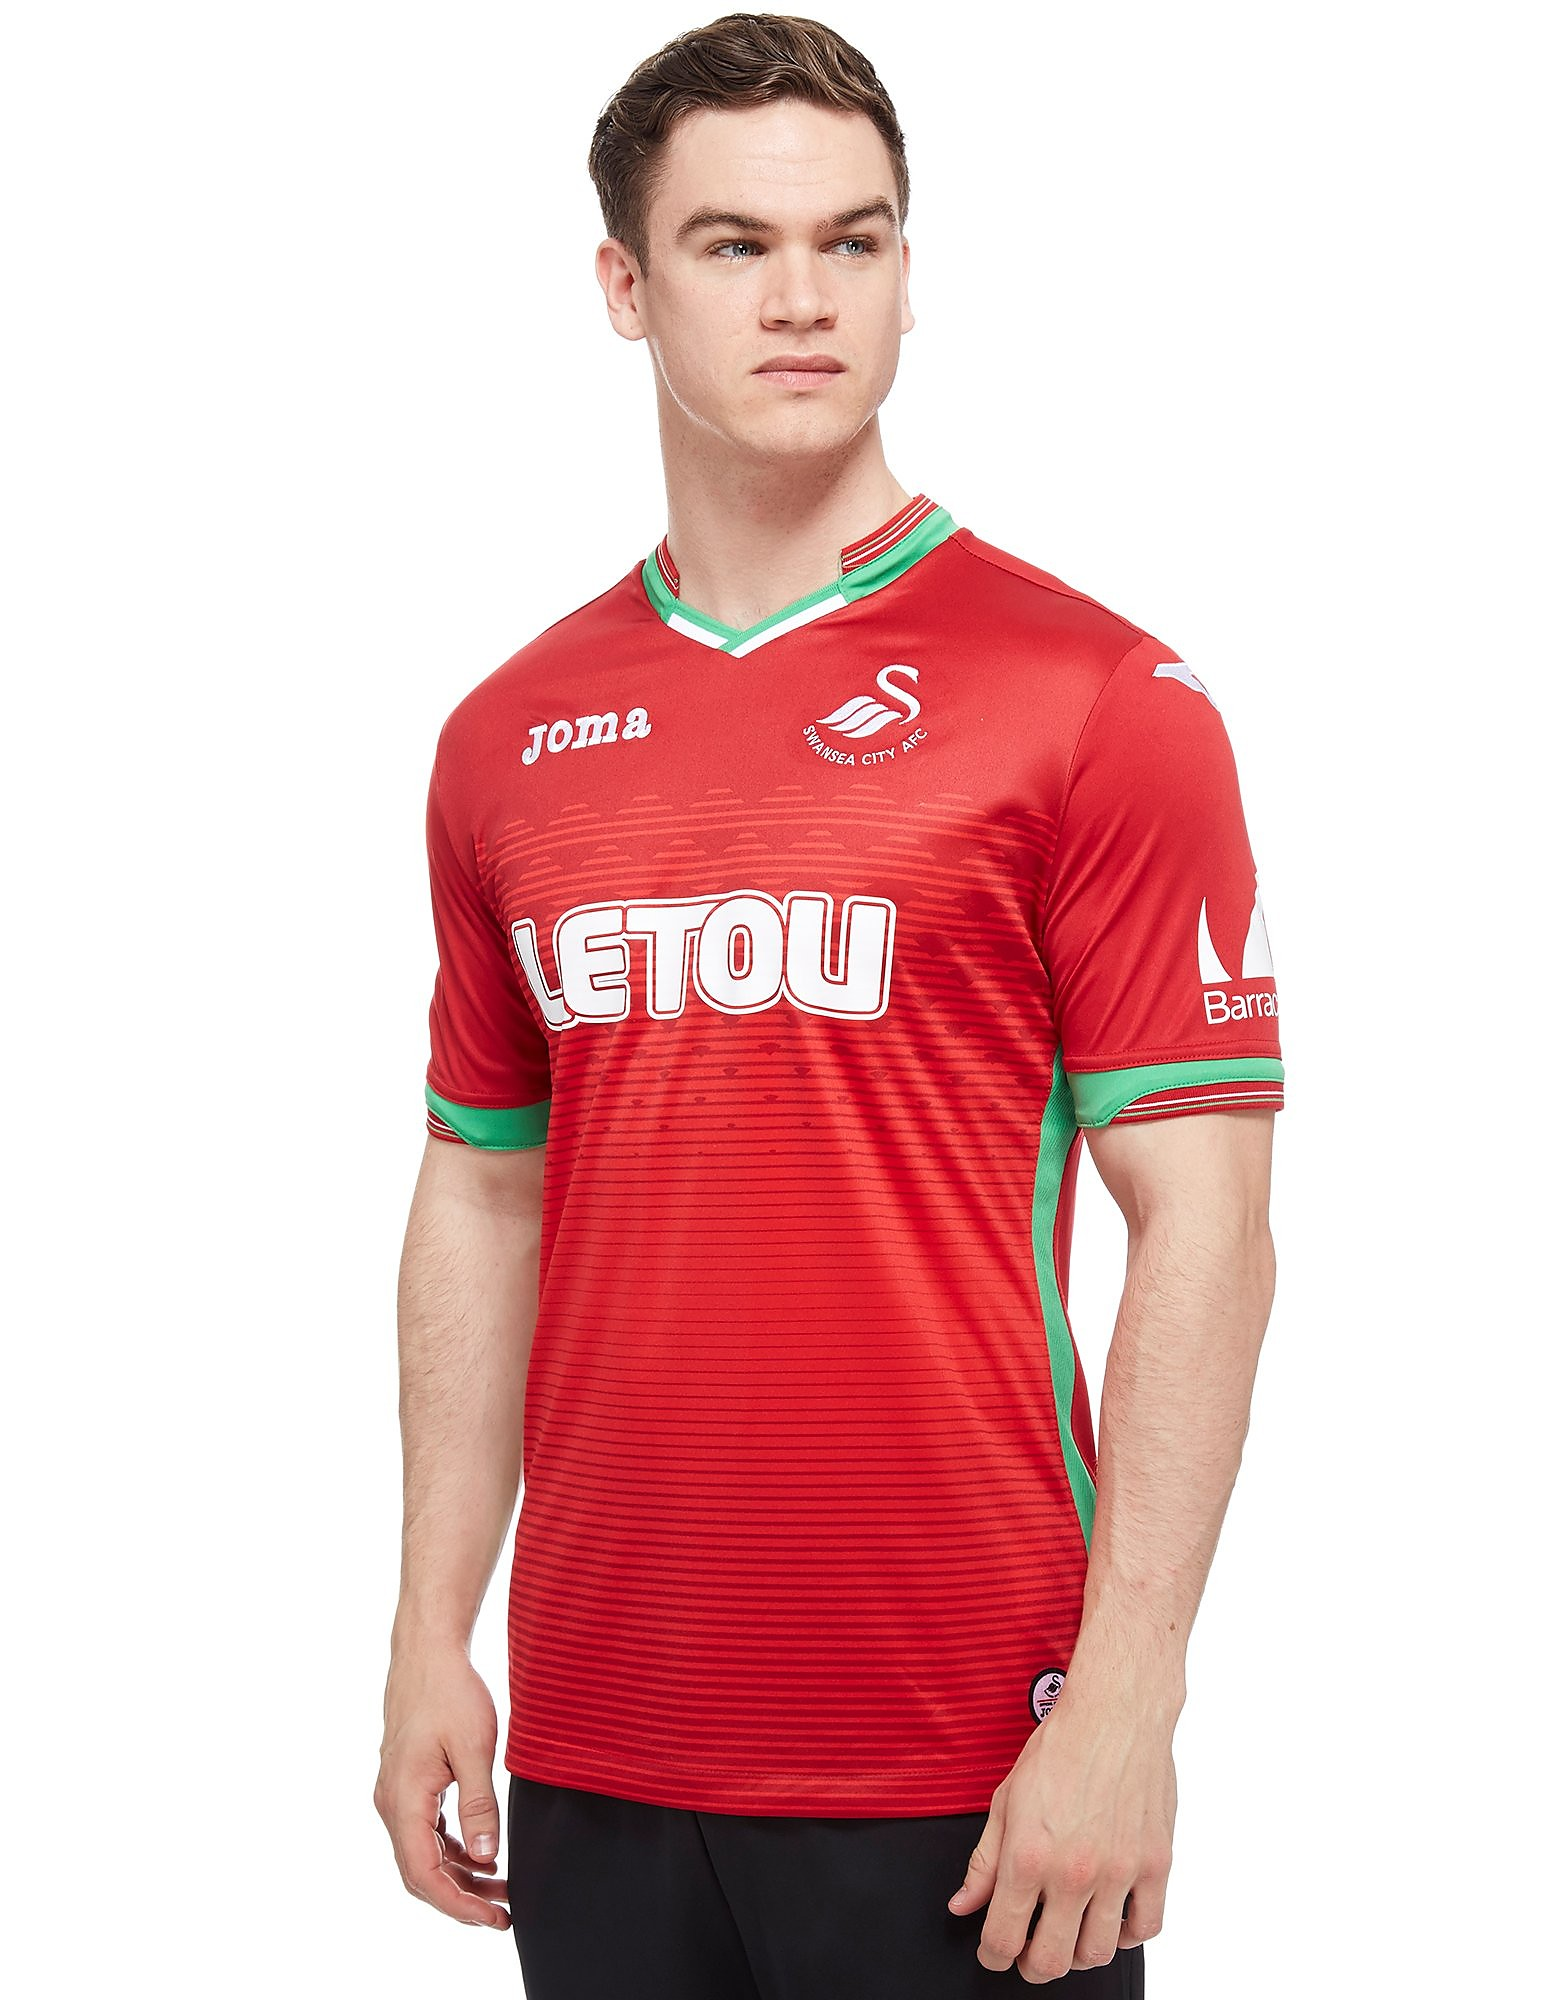 Joma Swansea City FC 2017/18 Away Shirt